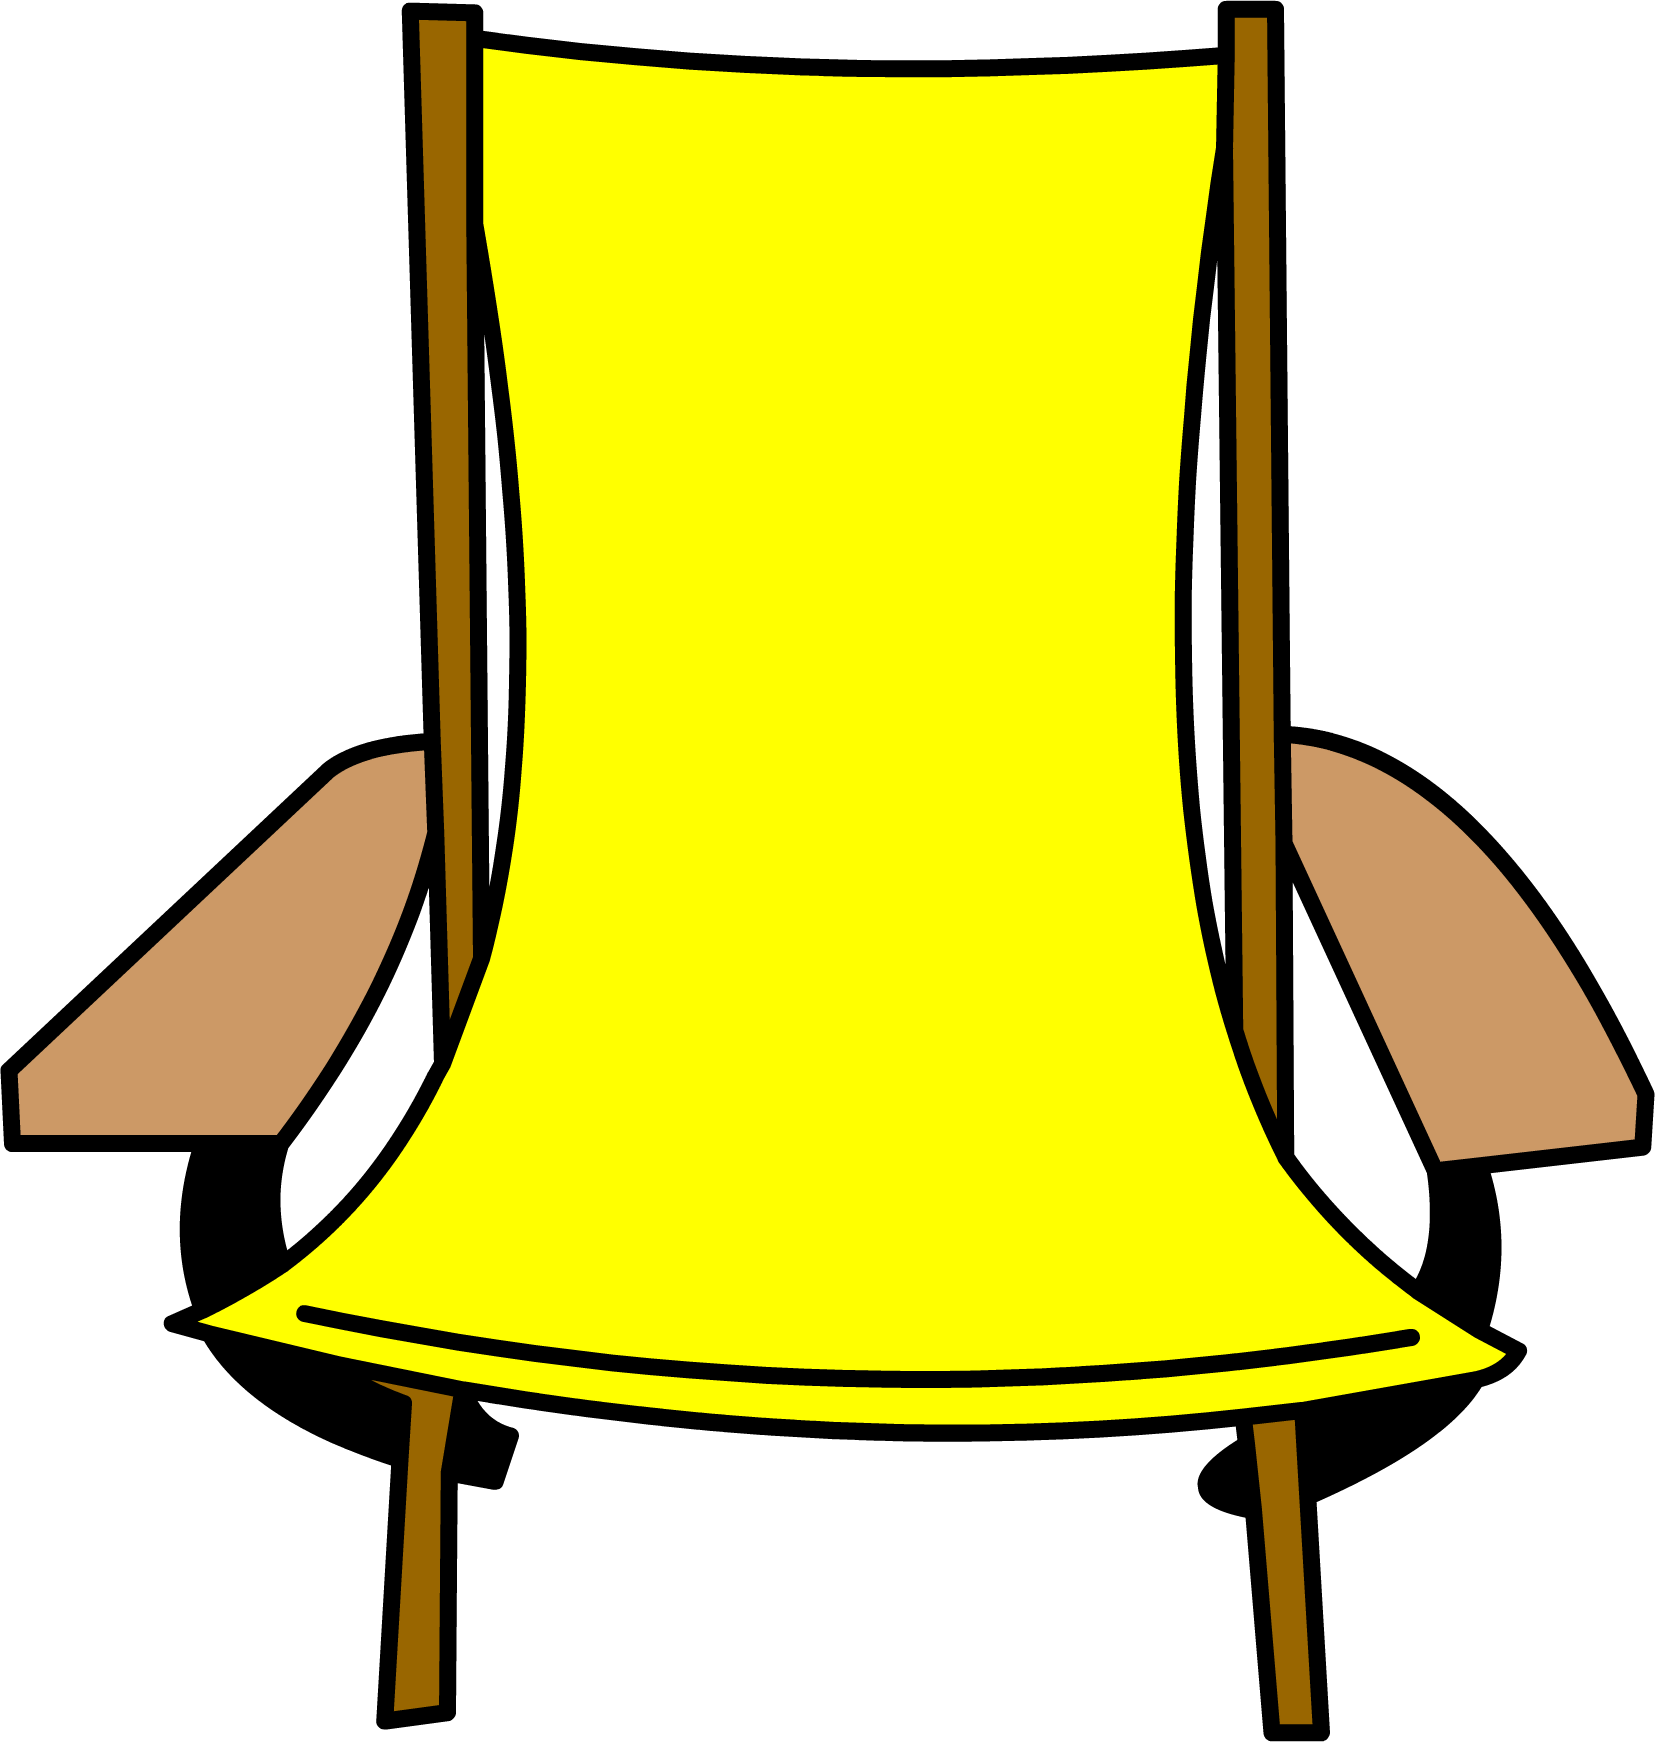 Beach lounge chair png - Image Folding Chair Png Club Penguin Wiki Fandom Powered By Wikia